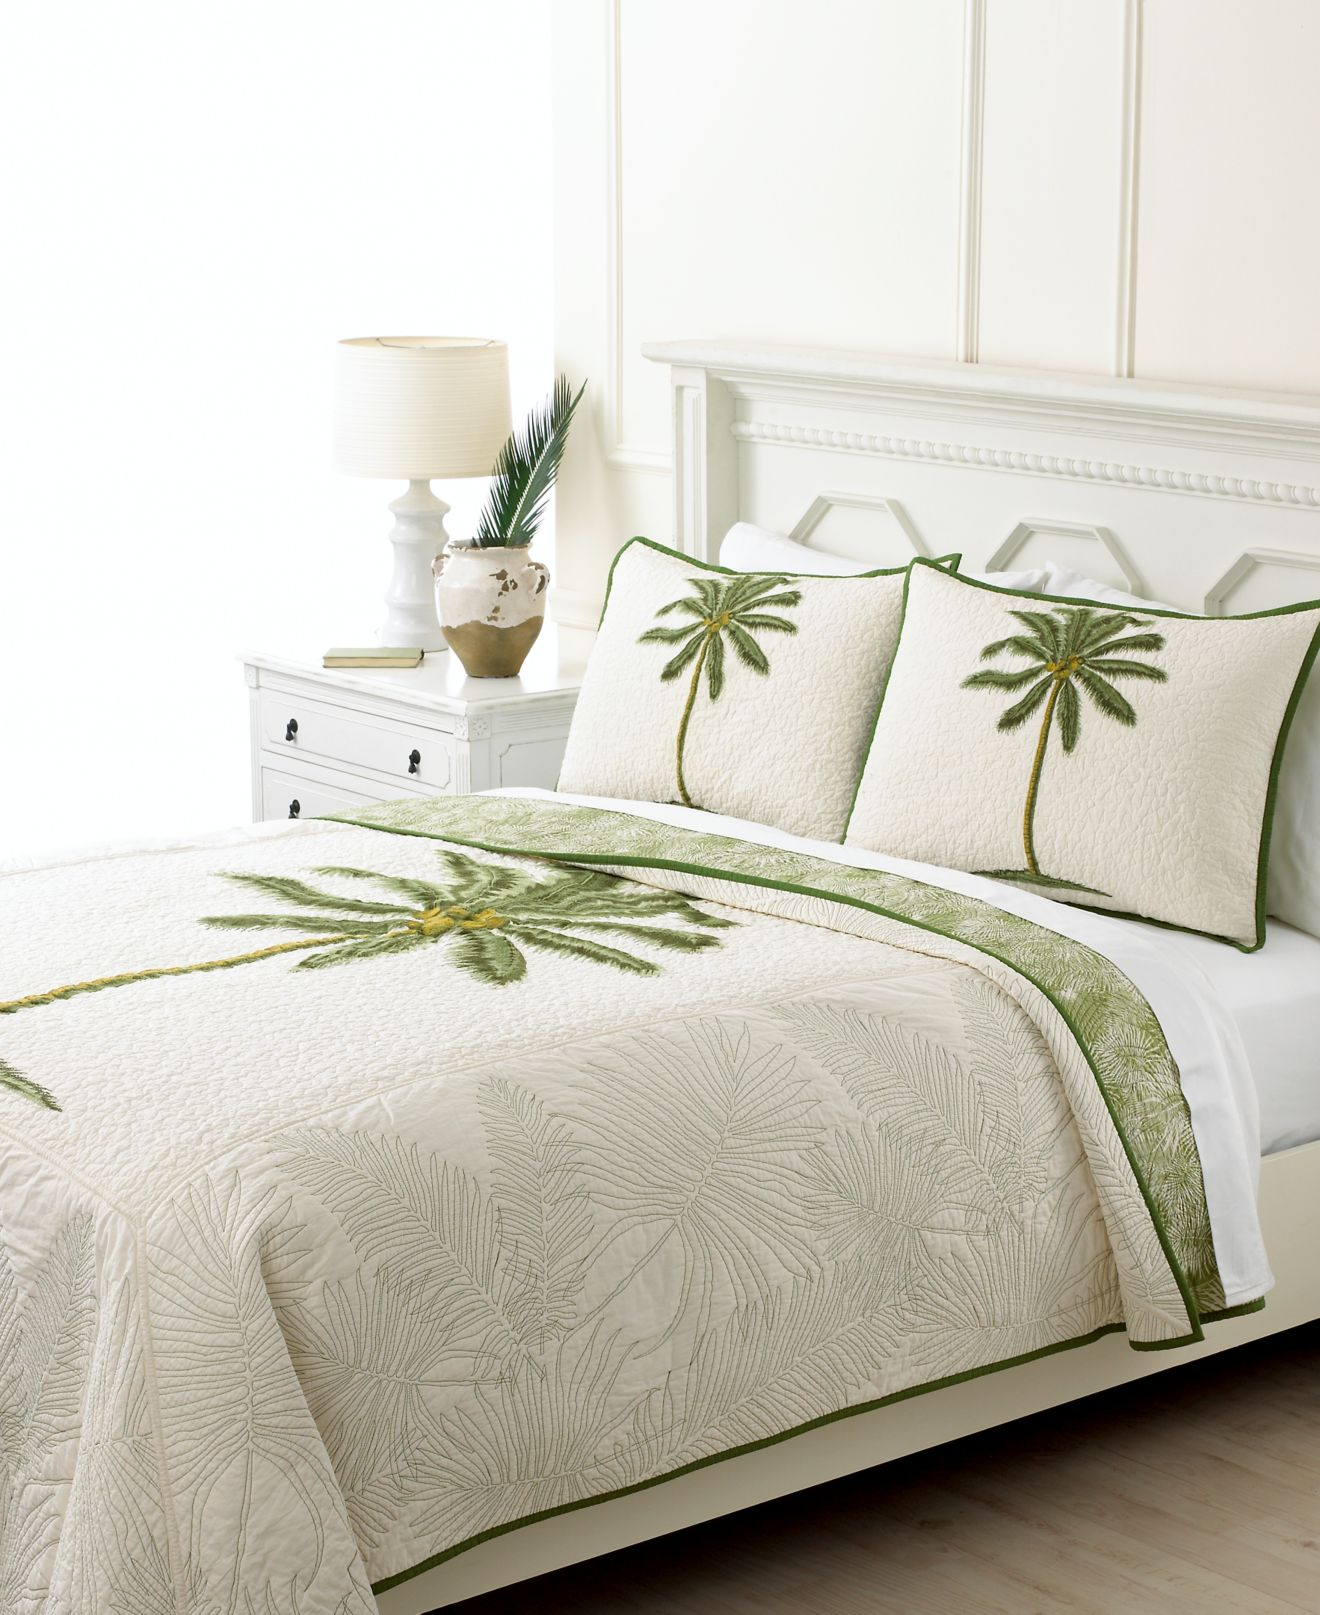 Favorite Palm Tree Bedding Sets Twin - Bedding Designs GK42